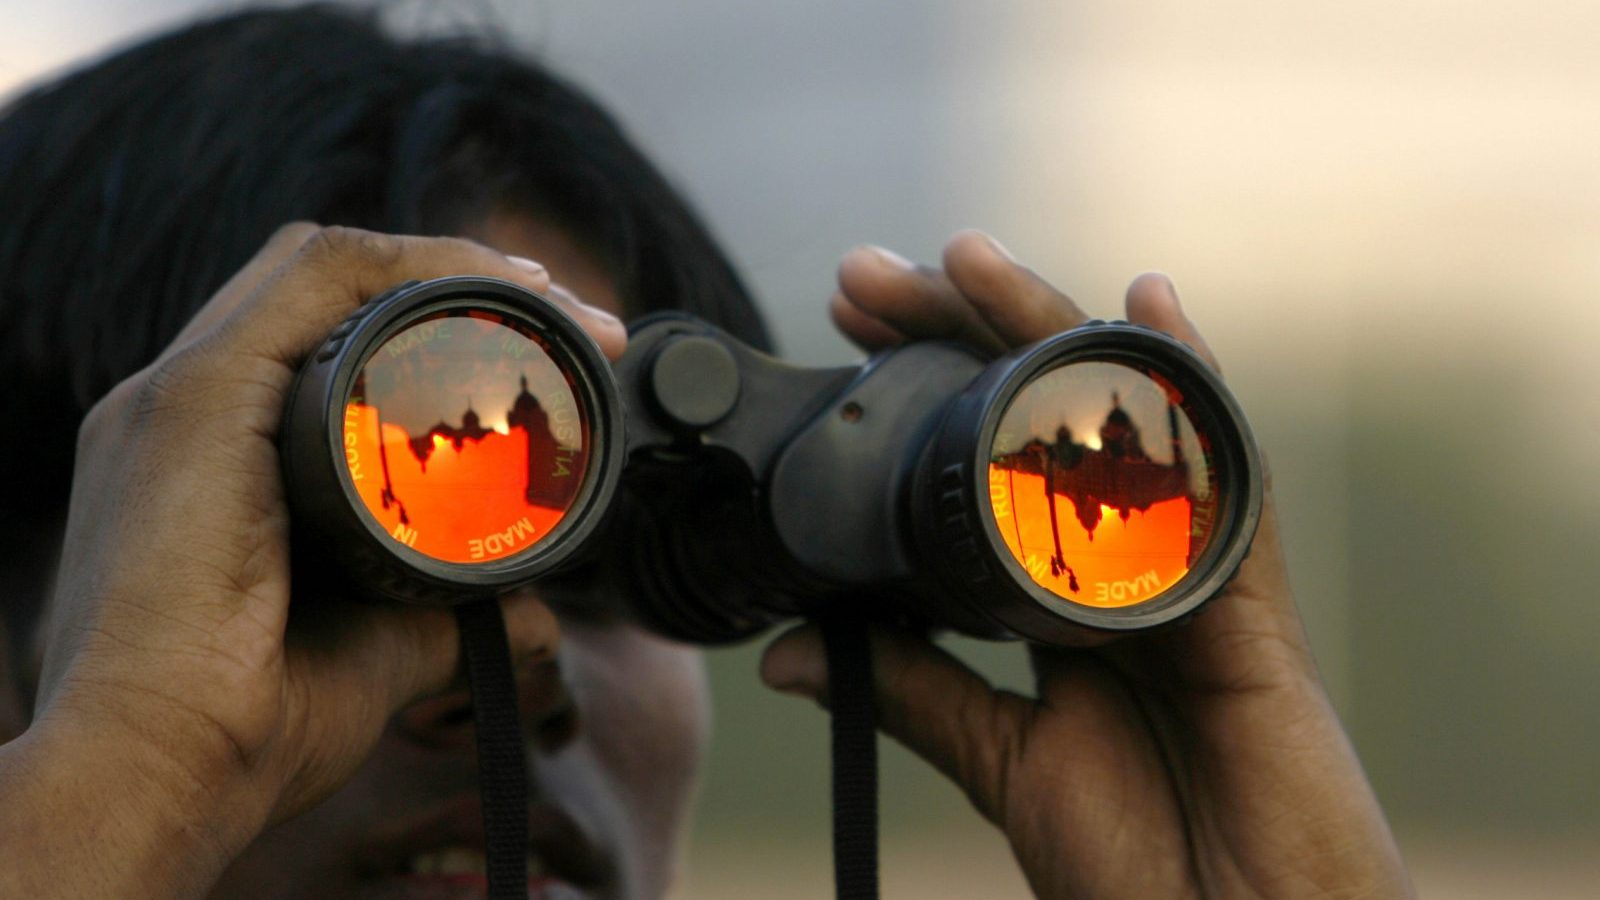 A visitor views the Taj Mahal hotel, which is reflected in his binoculars, in Mumbai December 10, 2008. REUTERS/Arko Datta (INDIA) - RTR22GDD